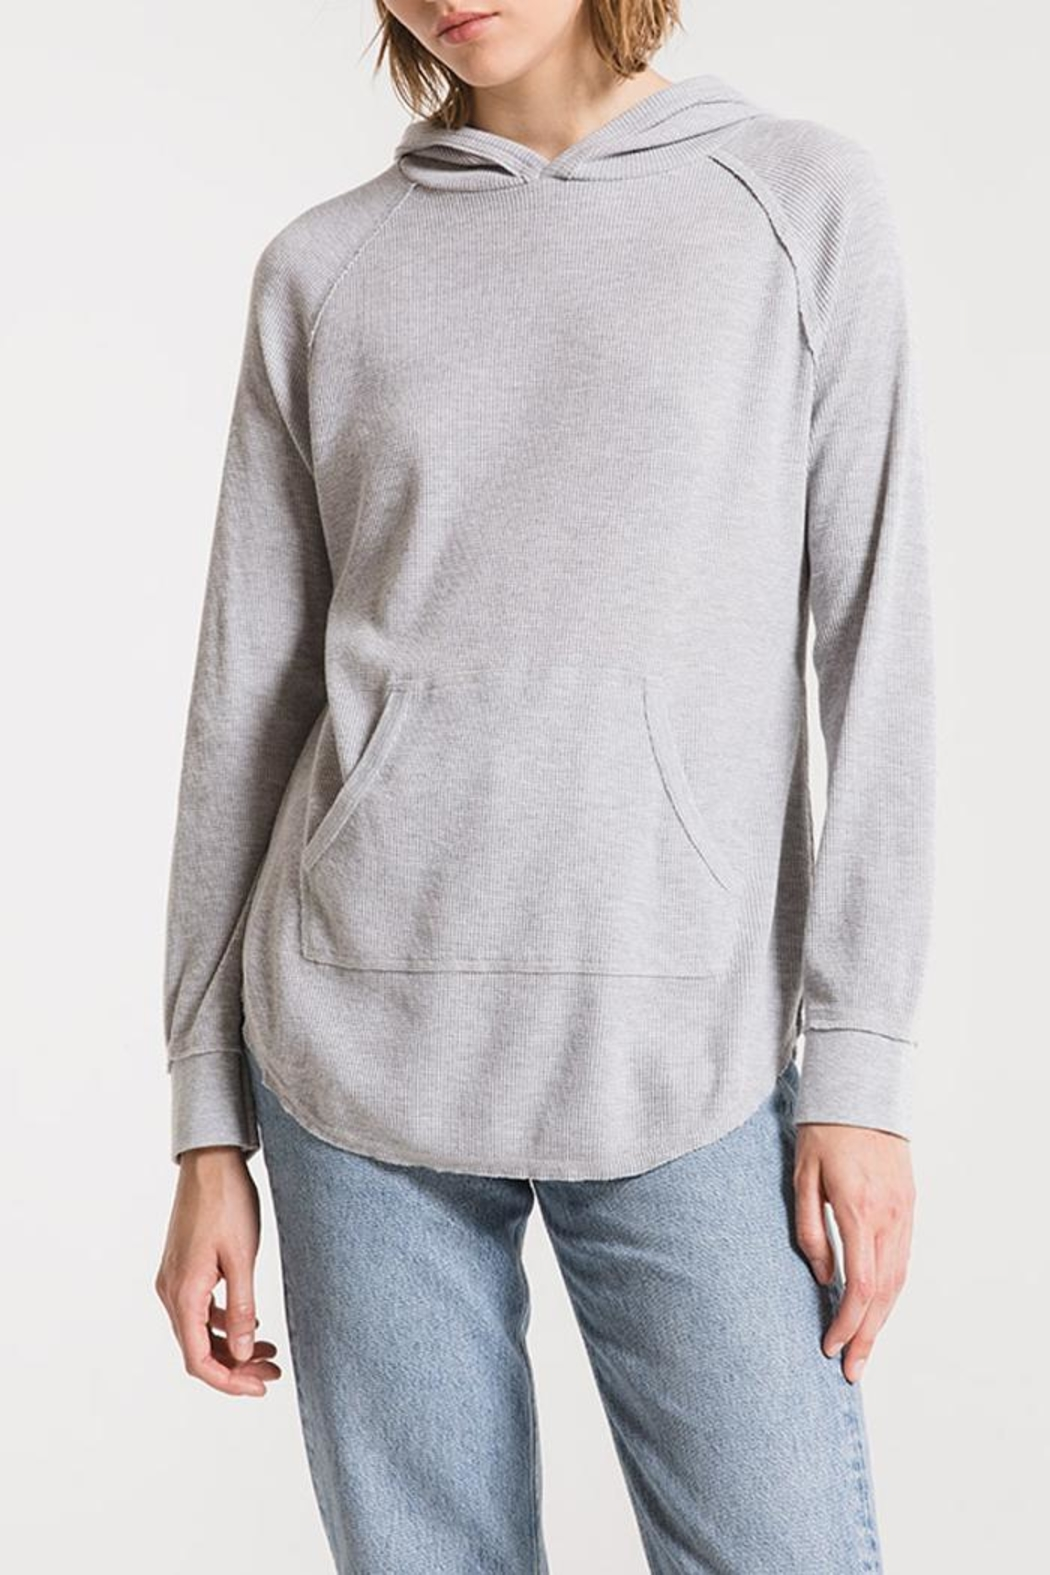 z supply Thermal Hooded Tunic - Main Image